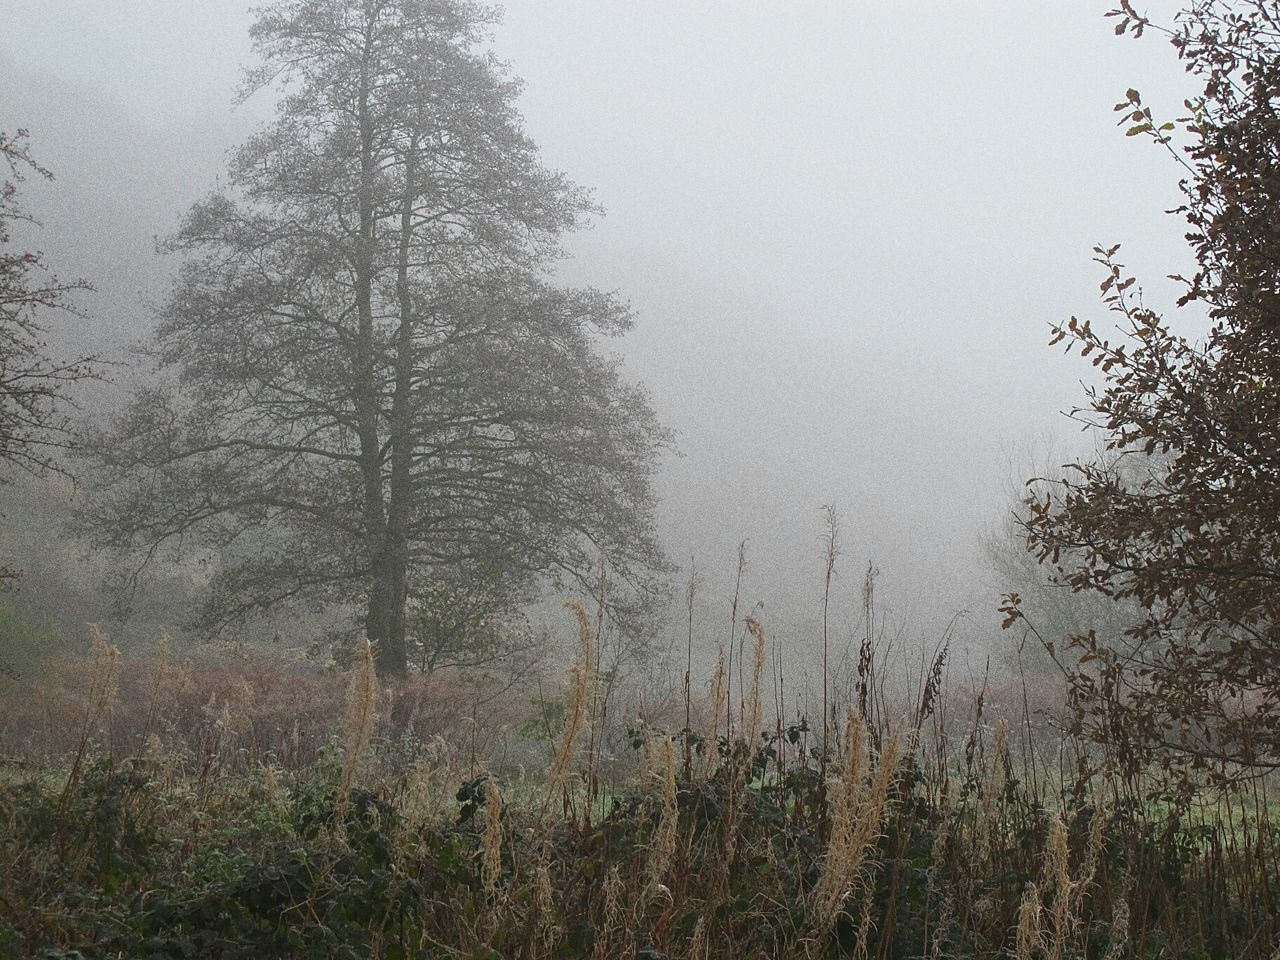 Tree Nature Fog Landscape Outdoors Plant No People Sky Beauty In Nature Day Grass Lush - Description Foggy Morning Valleys EyeEmbestshots Cold Temperature Fineartphotography Autumnbeauty Autumn Leaves Enchanted Forest WoodLand Tranquility Frosty Days Winter Is Coming Scenics Hazy